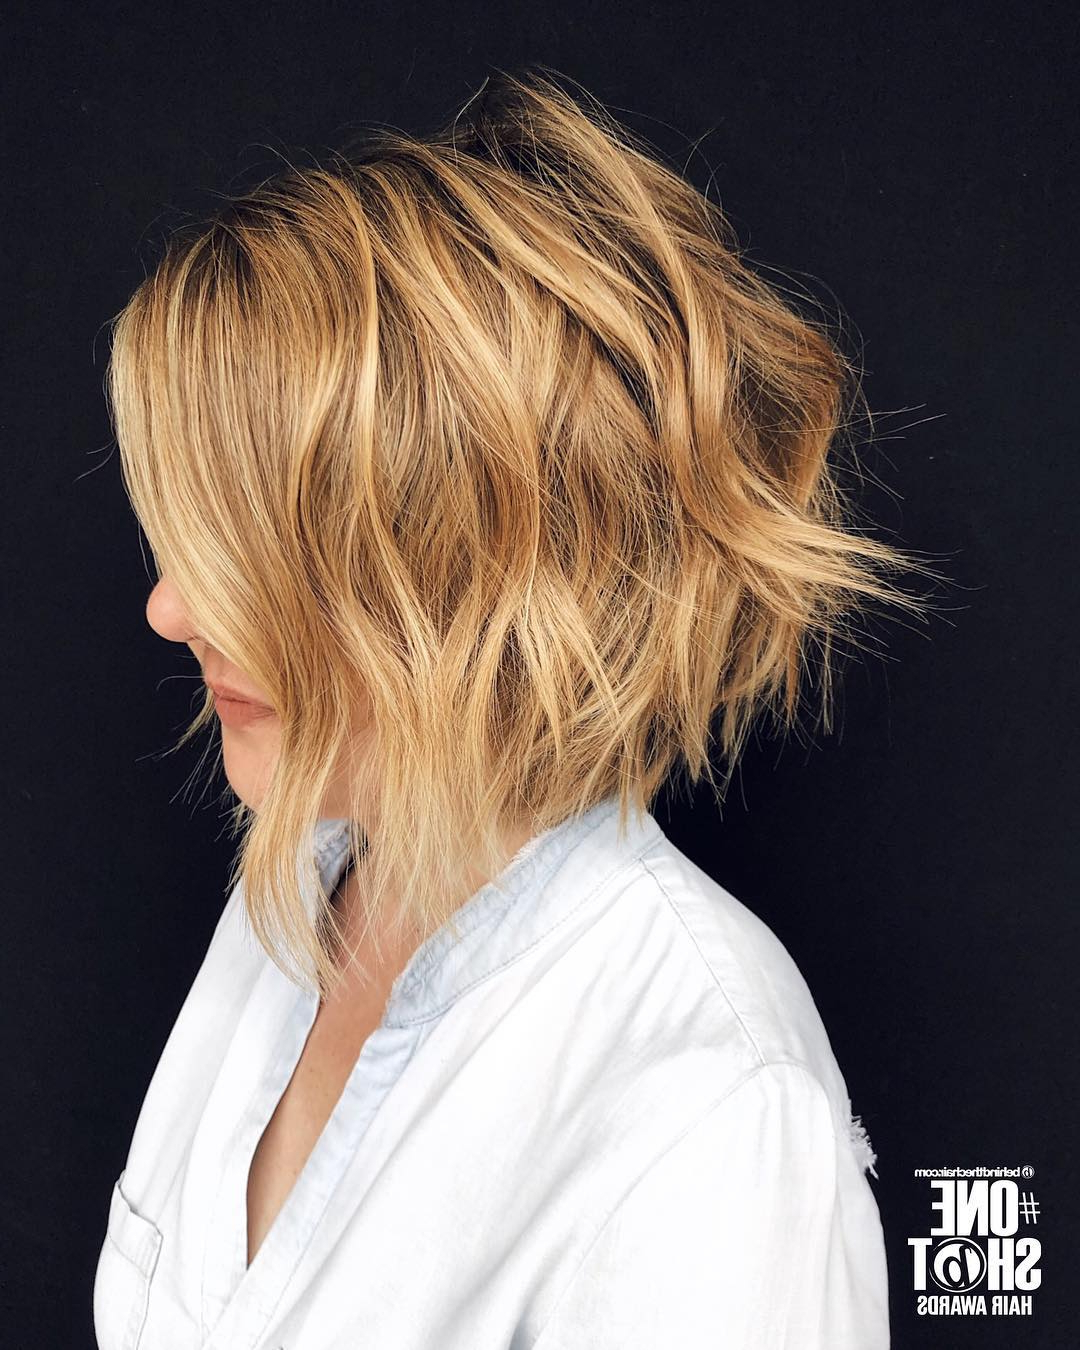 Top 10 Best Short Bob Hairstyles For Summer, Short Haircuts 2020 Regarding Short Bob Haircuts With Waves (View 2 of 20)